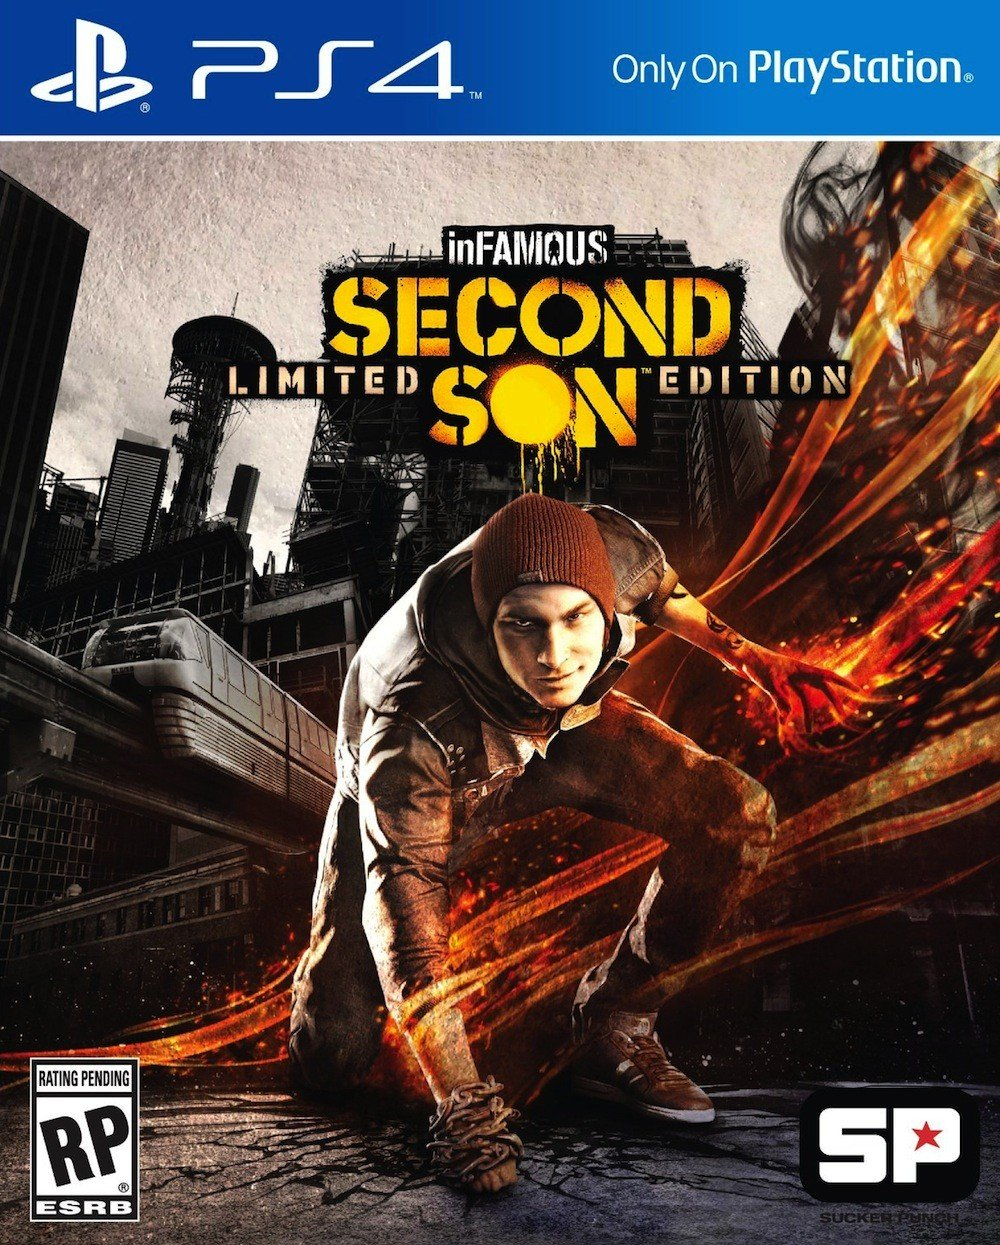 inFAMOUS Second Son 恶名昭彰 次子